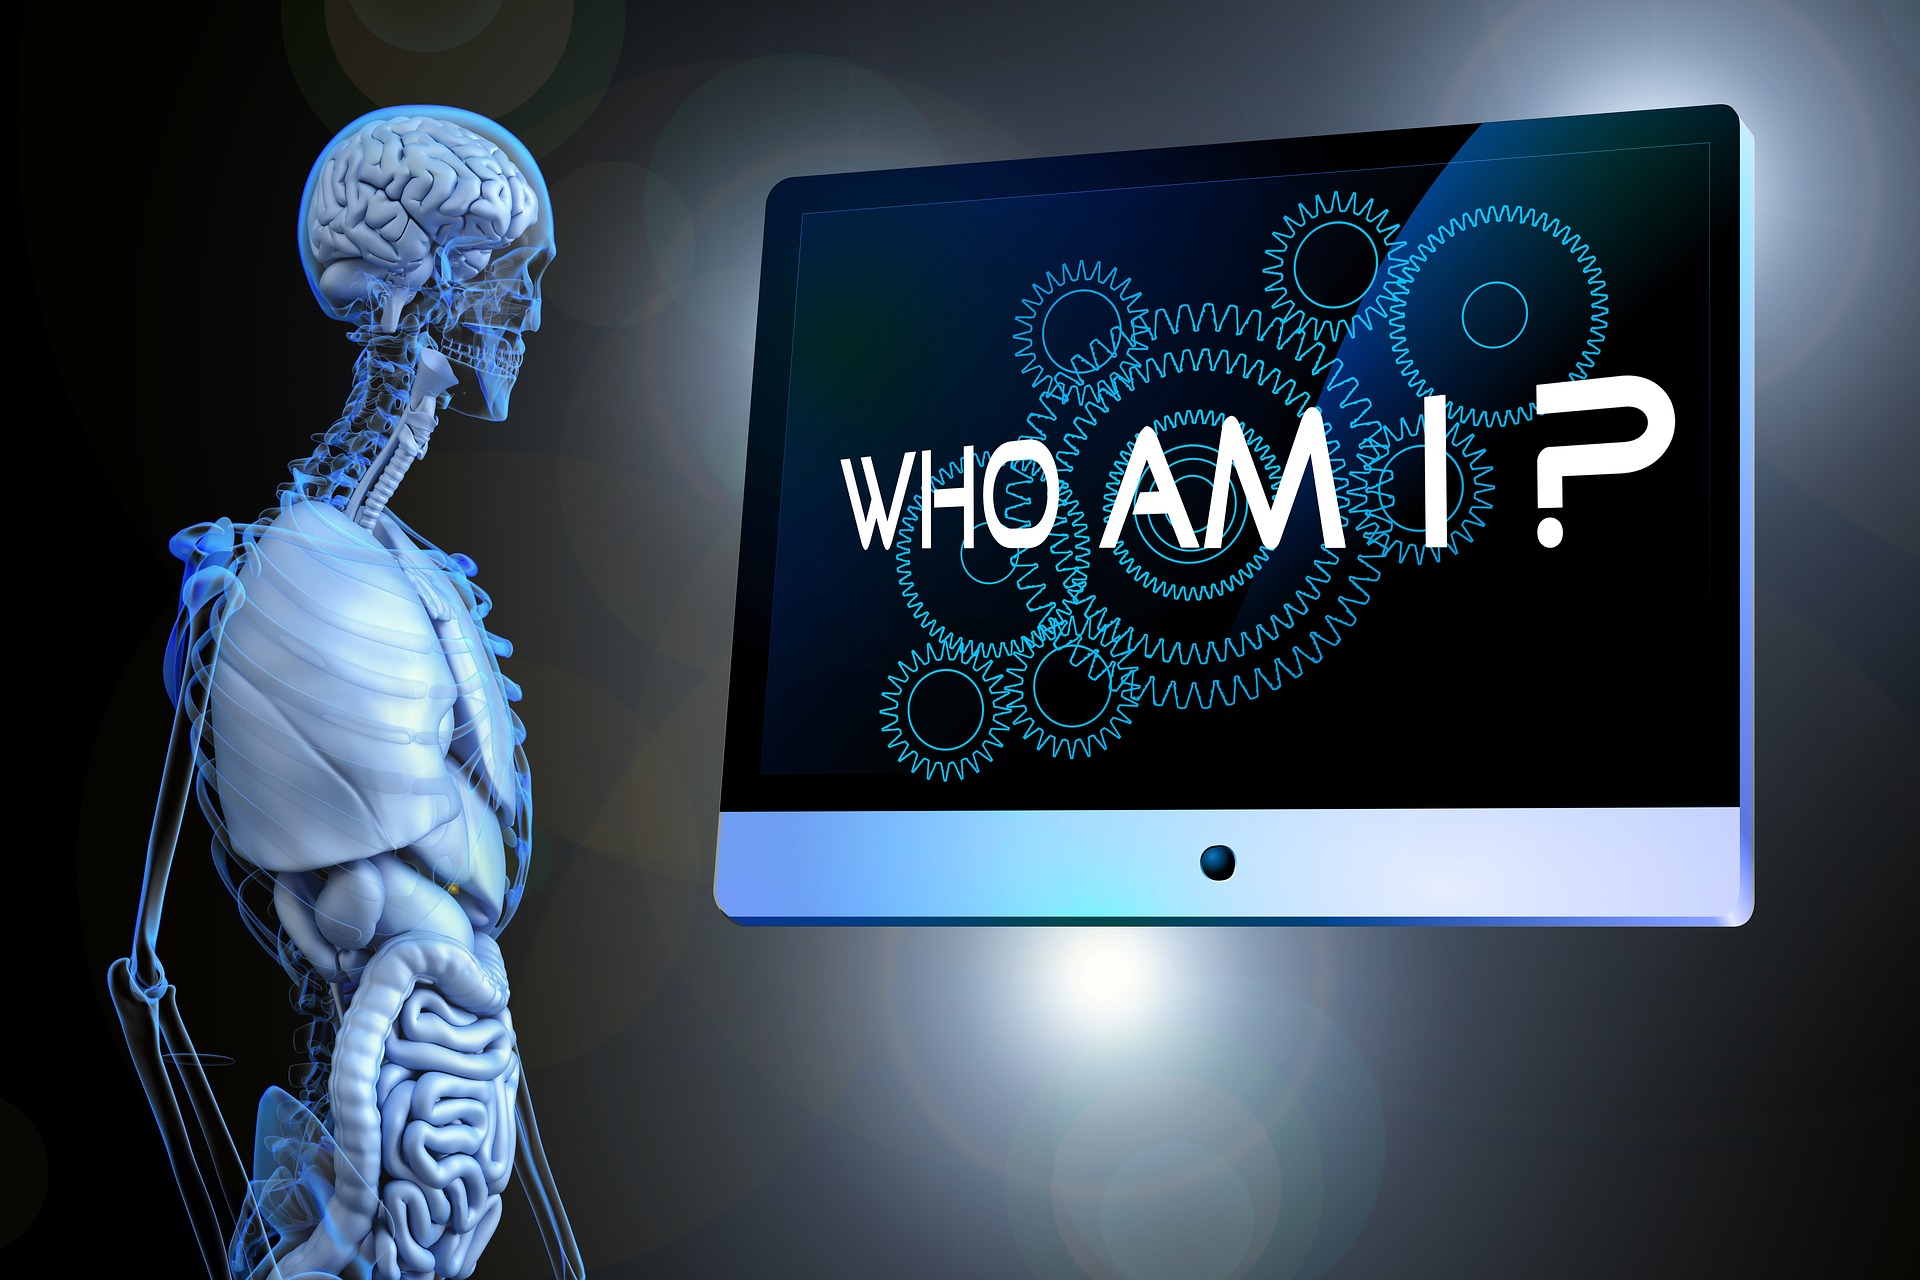 Who am I? question.